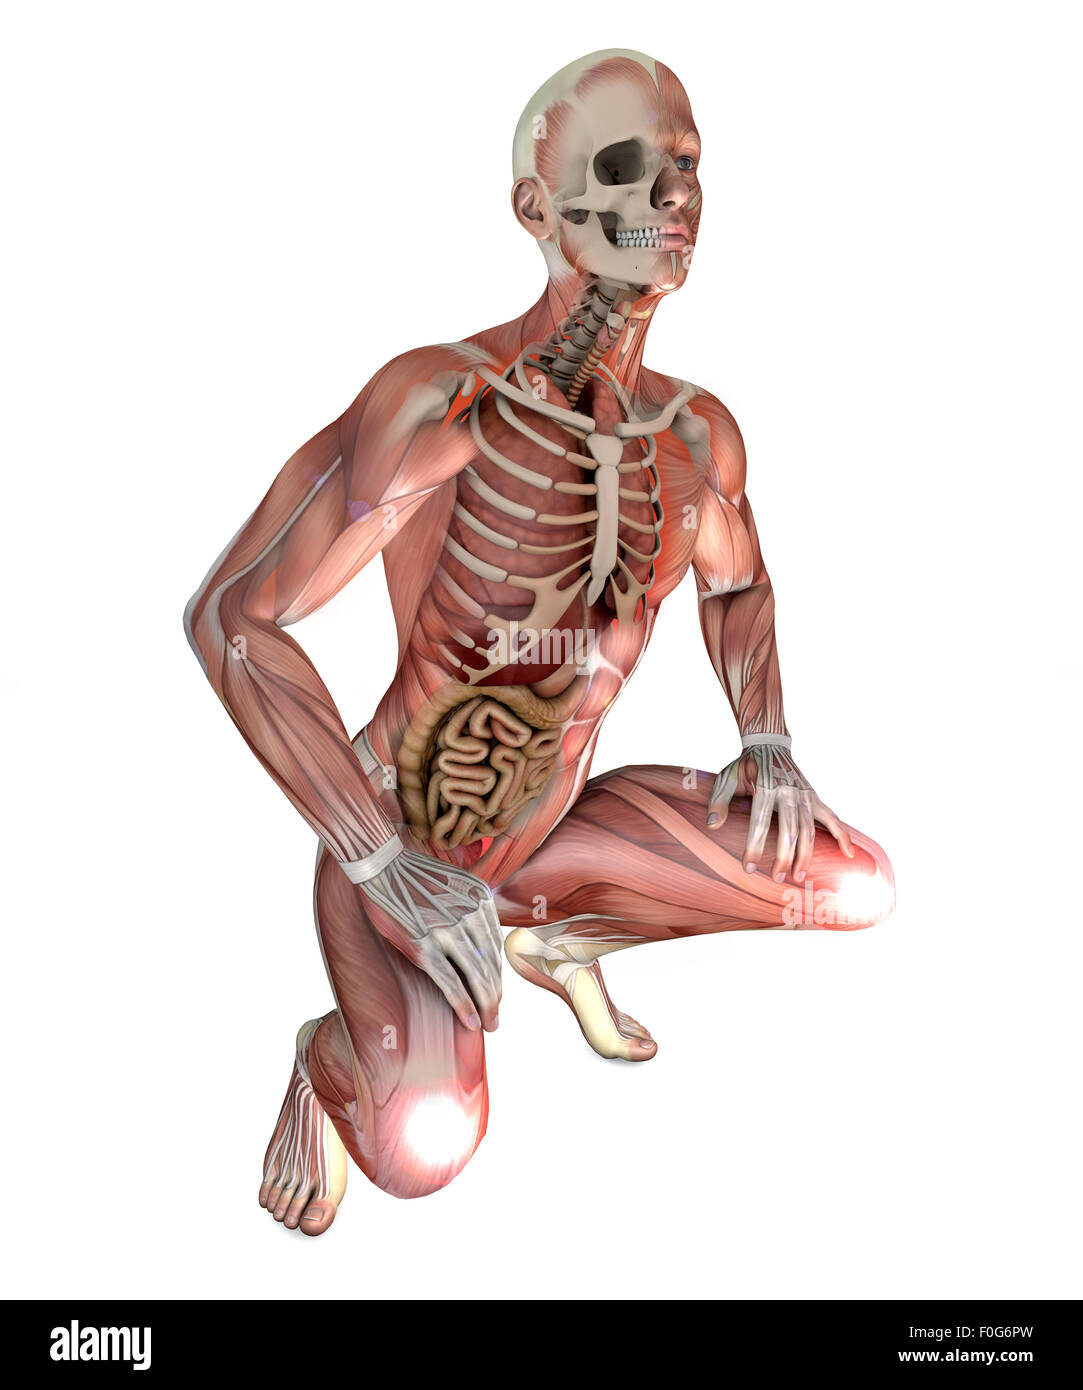 Illustration Of Male Body With Skeletal Muscles And Organs Isolated